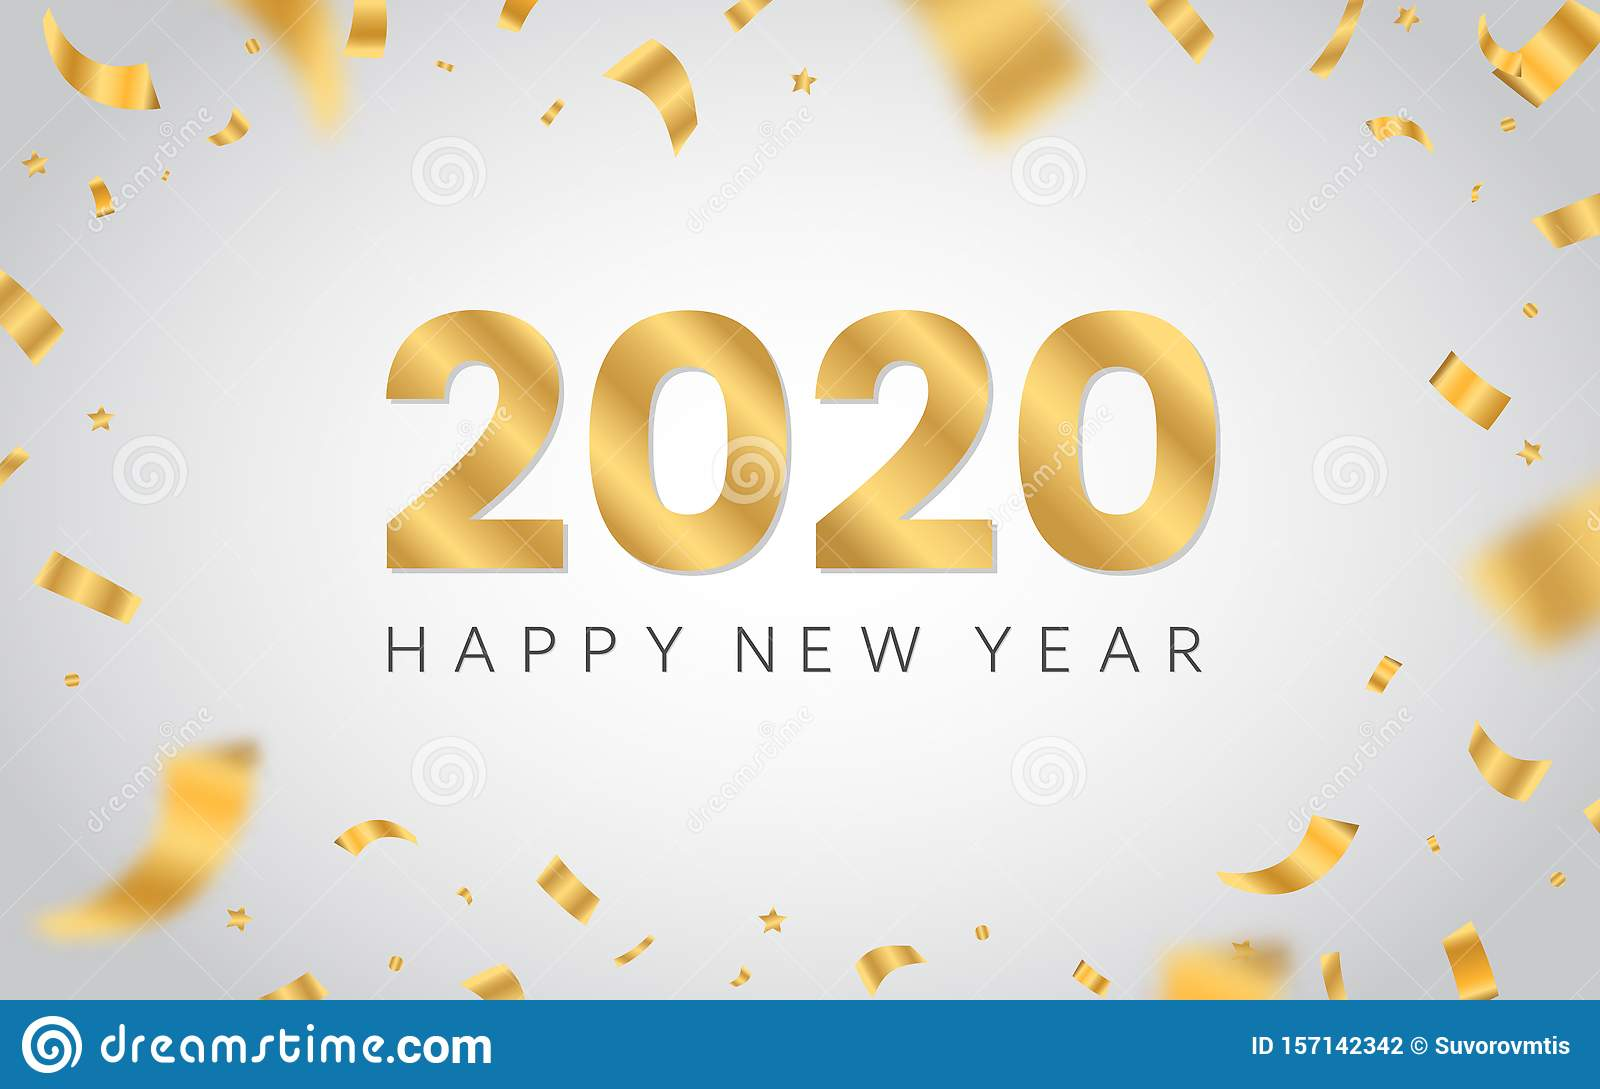 2020 Christmas White Background Happy New Year 2020. Golden Luxury Text On White Background